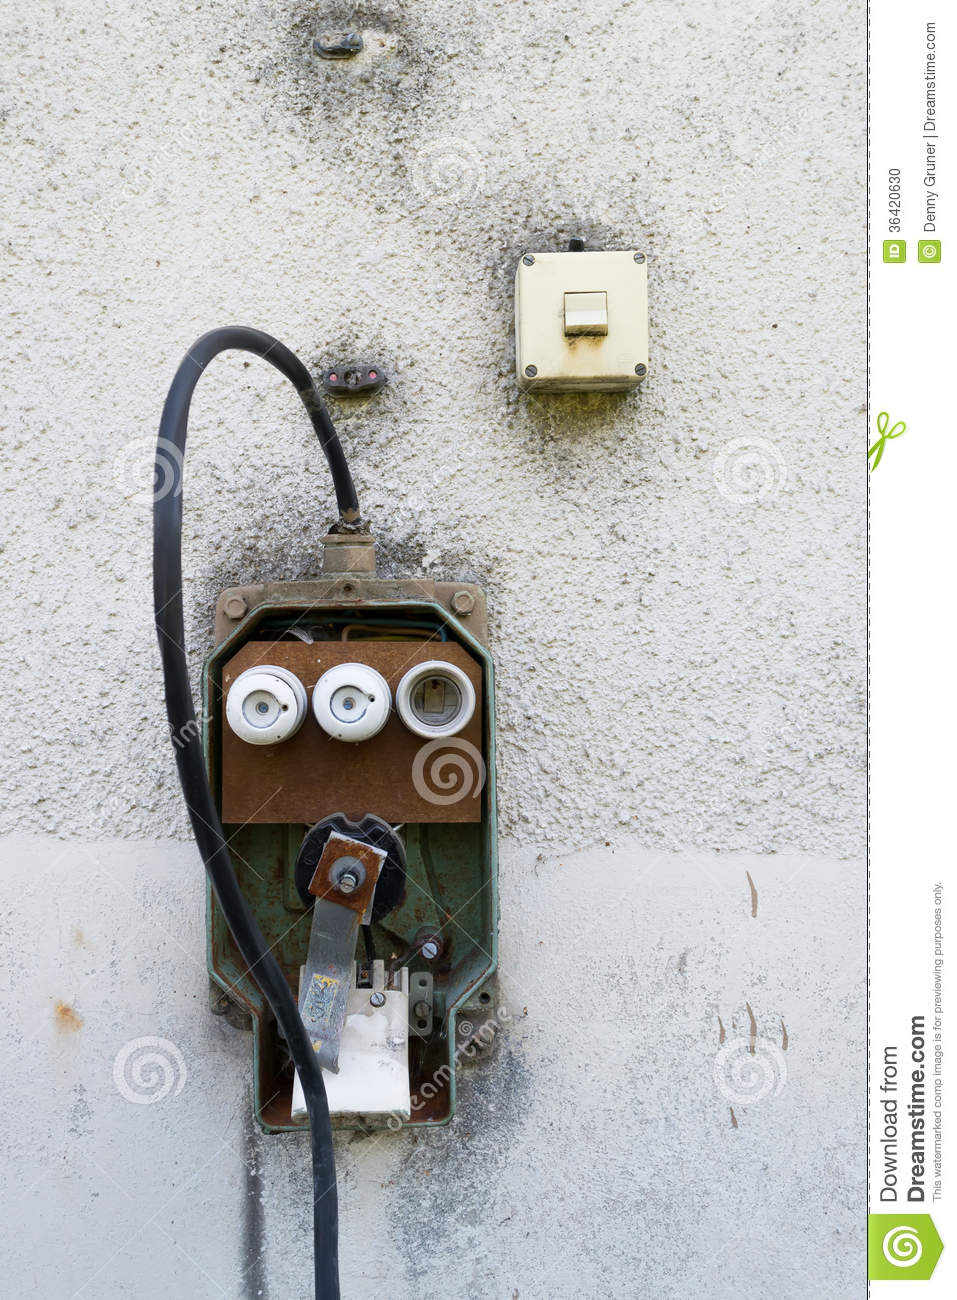 Old Fuse Box Trip Switch - Wiring Diagram & Cable Management Old Fuse Box Trip Switch on